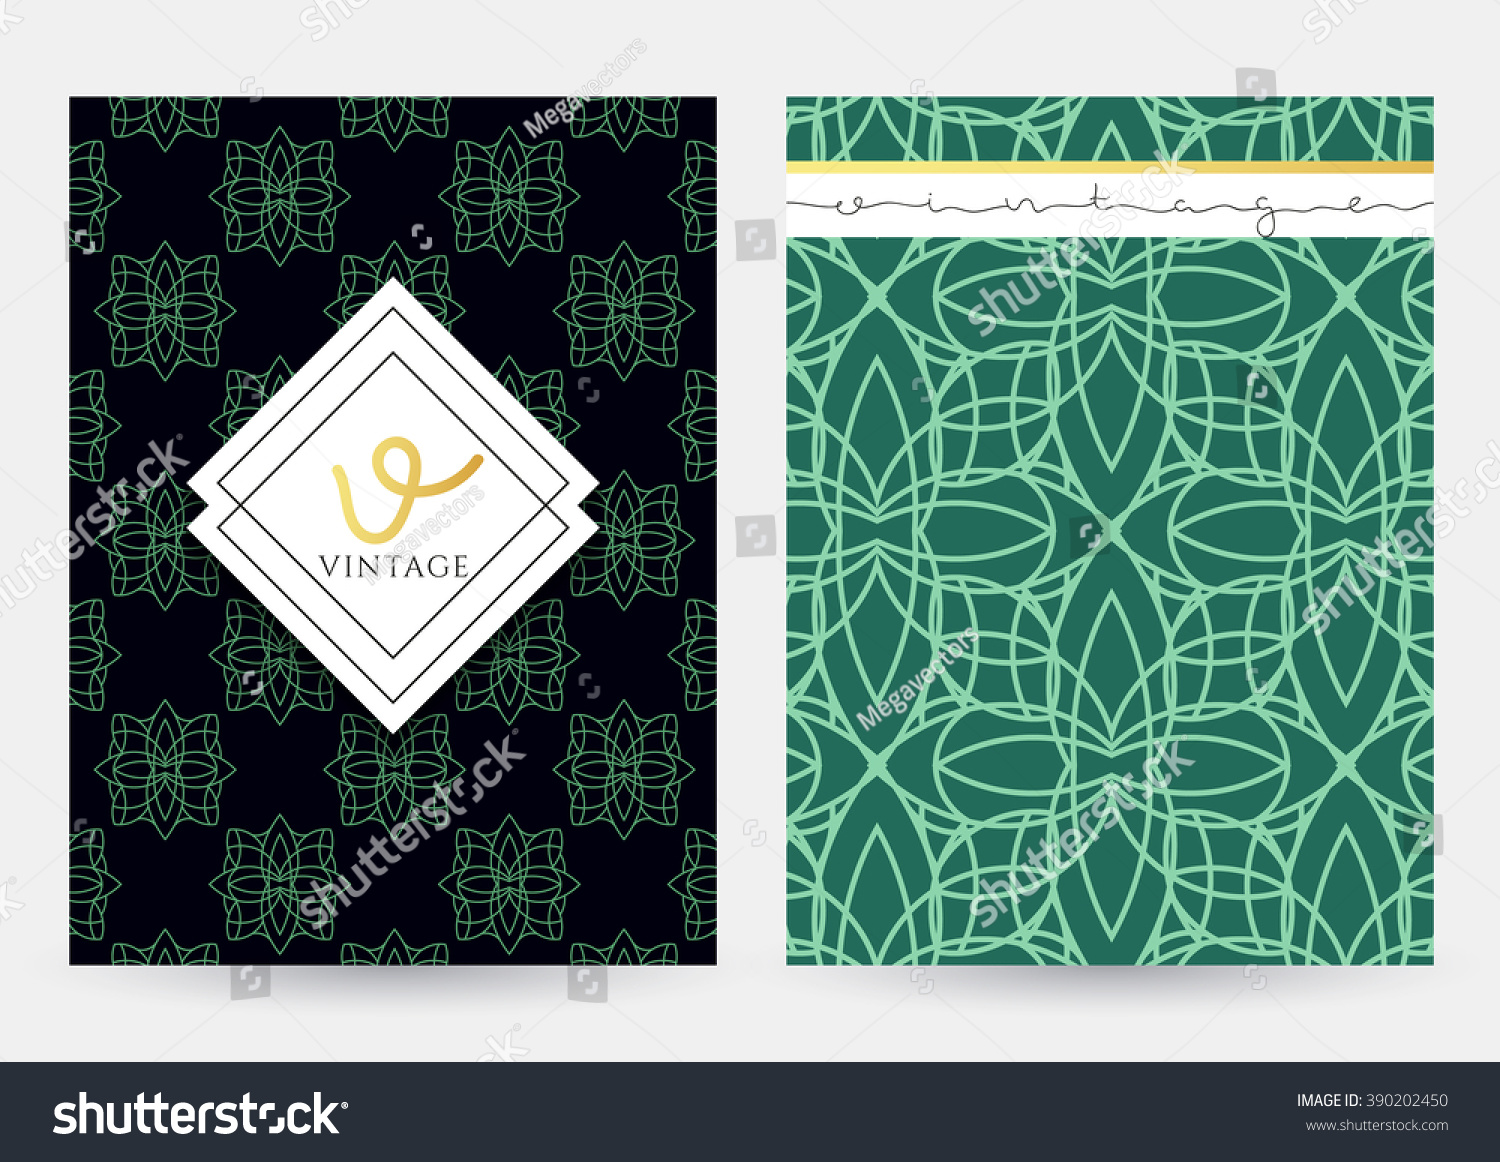 Cover page designs for school projects note book cover page design - Magazine Cover With Geometric Patterns Magazine Page Template Label Template Notebook Abstract For